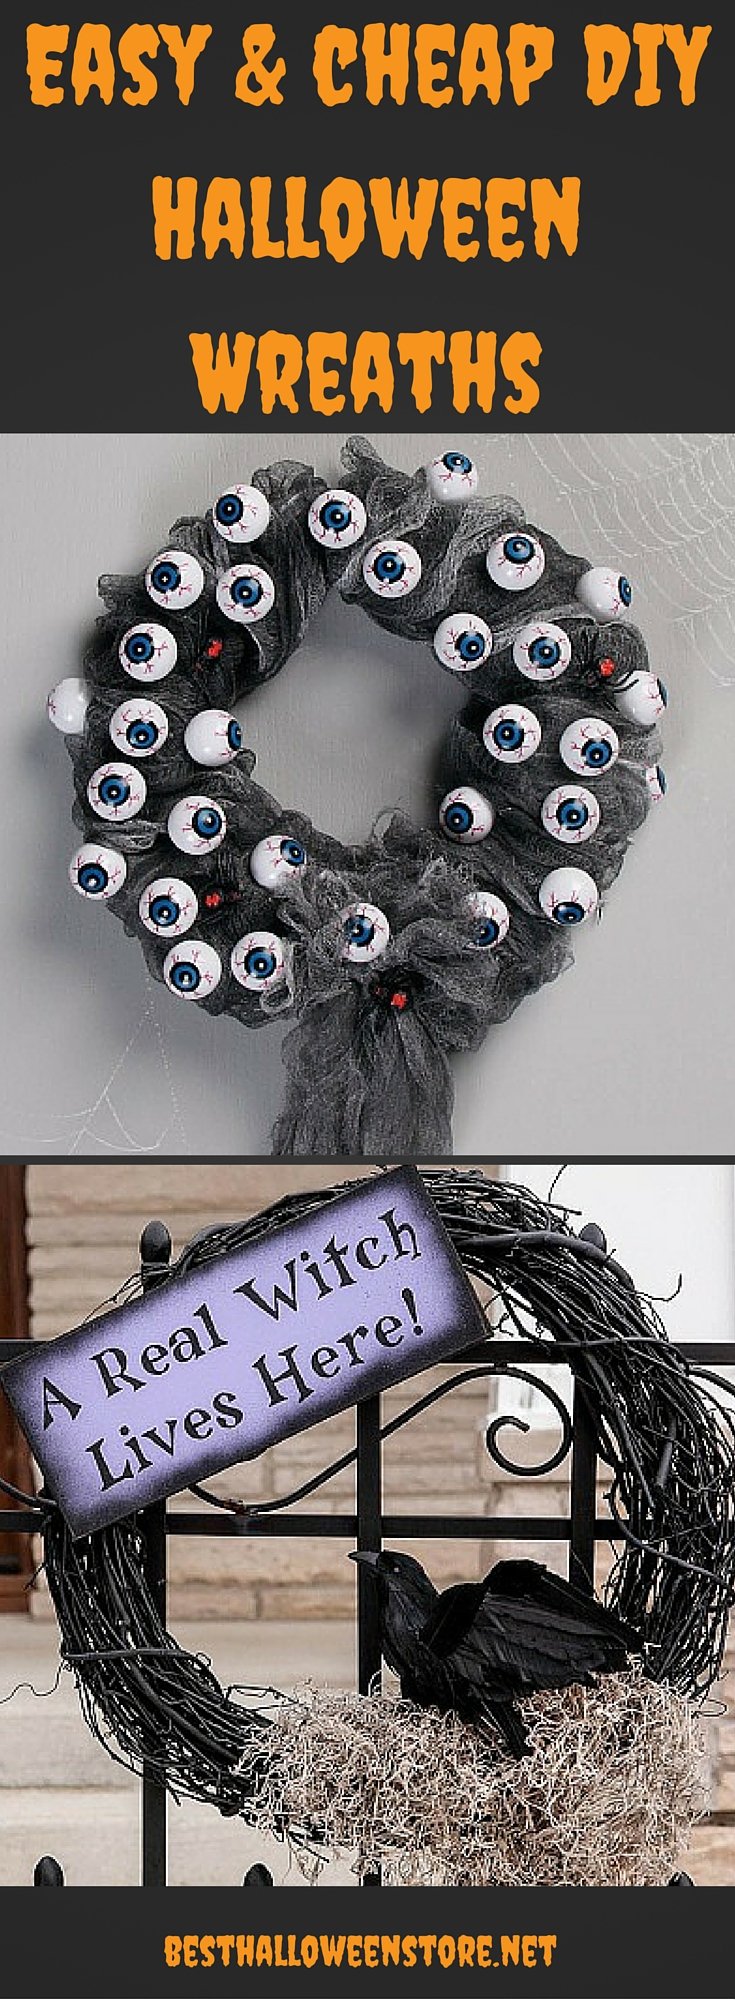 Easy and Cheap DIY Halloween Wreaths